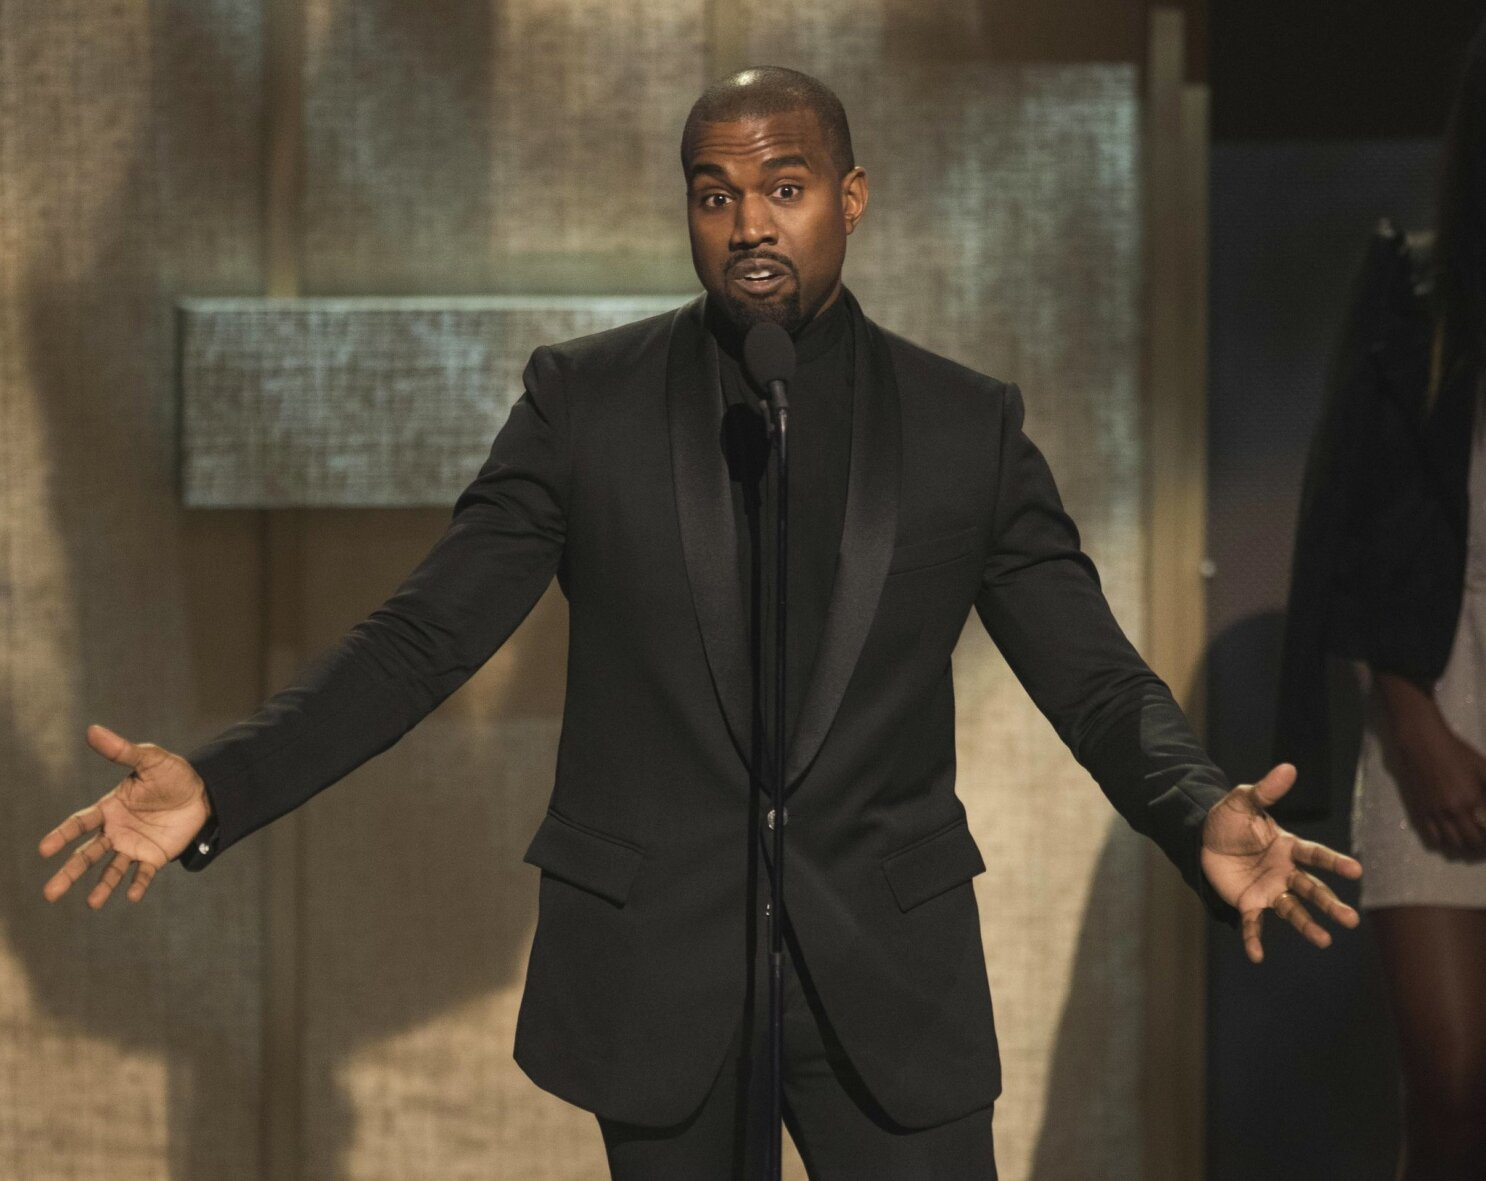 Column Roque De La Fuente Kanye West Ticket In California Is One For The Ages The San Diego Union Tribune